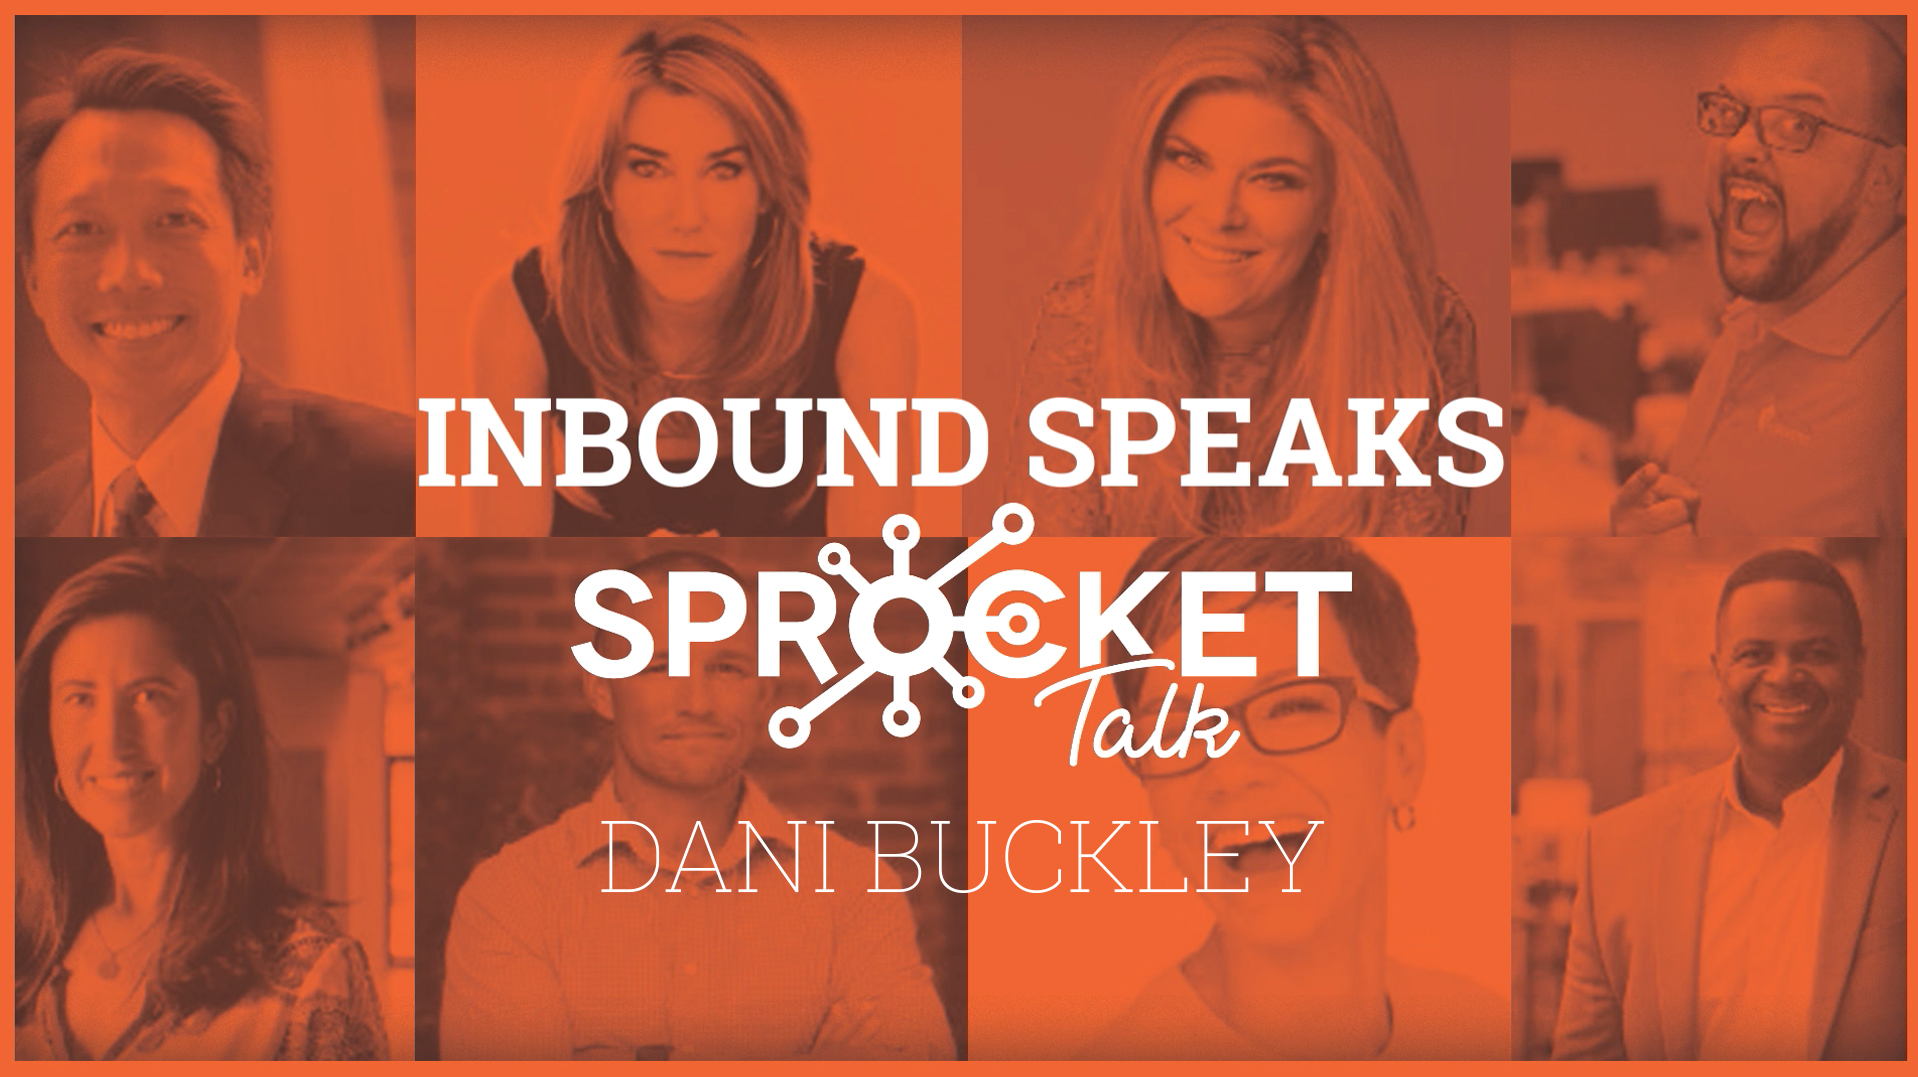 Dani Buckley How to Build a Sales Play in 30 Minutes or Less #Inbound19